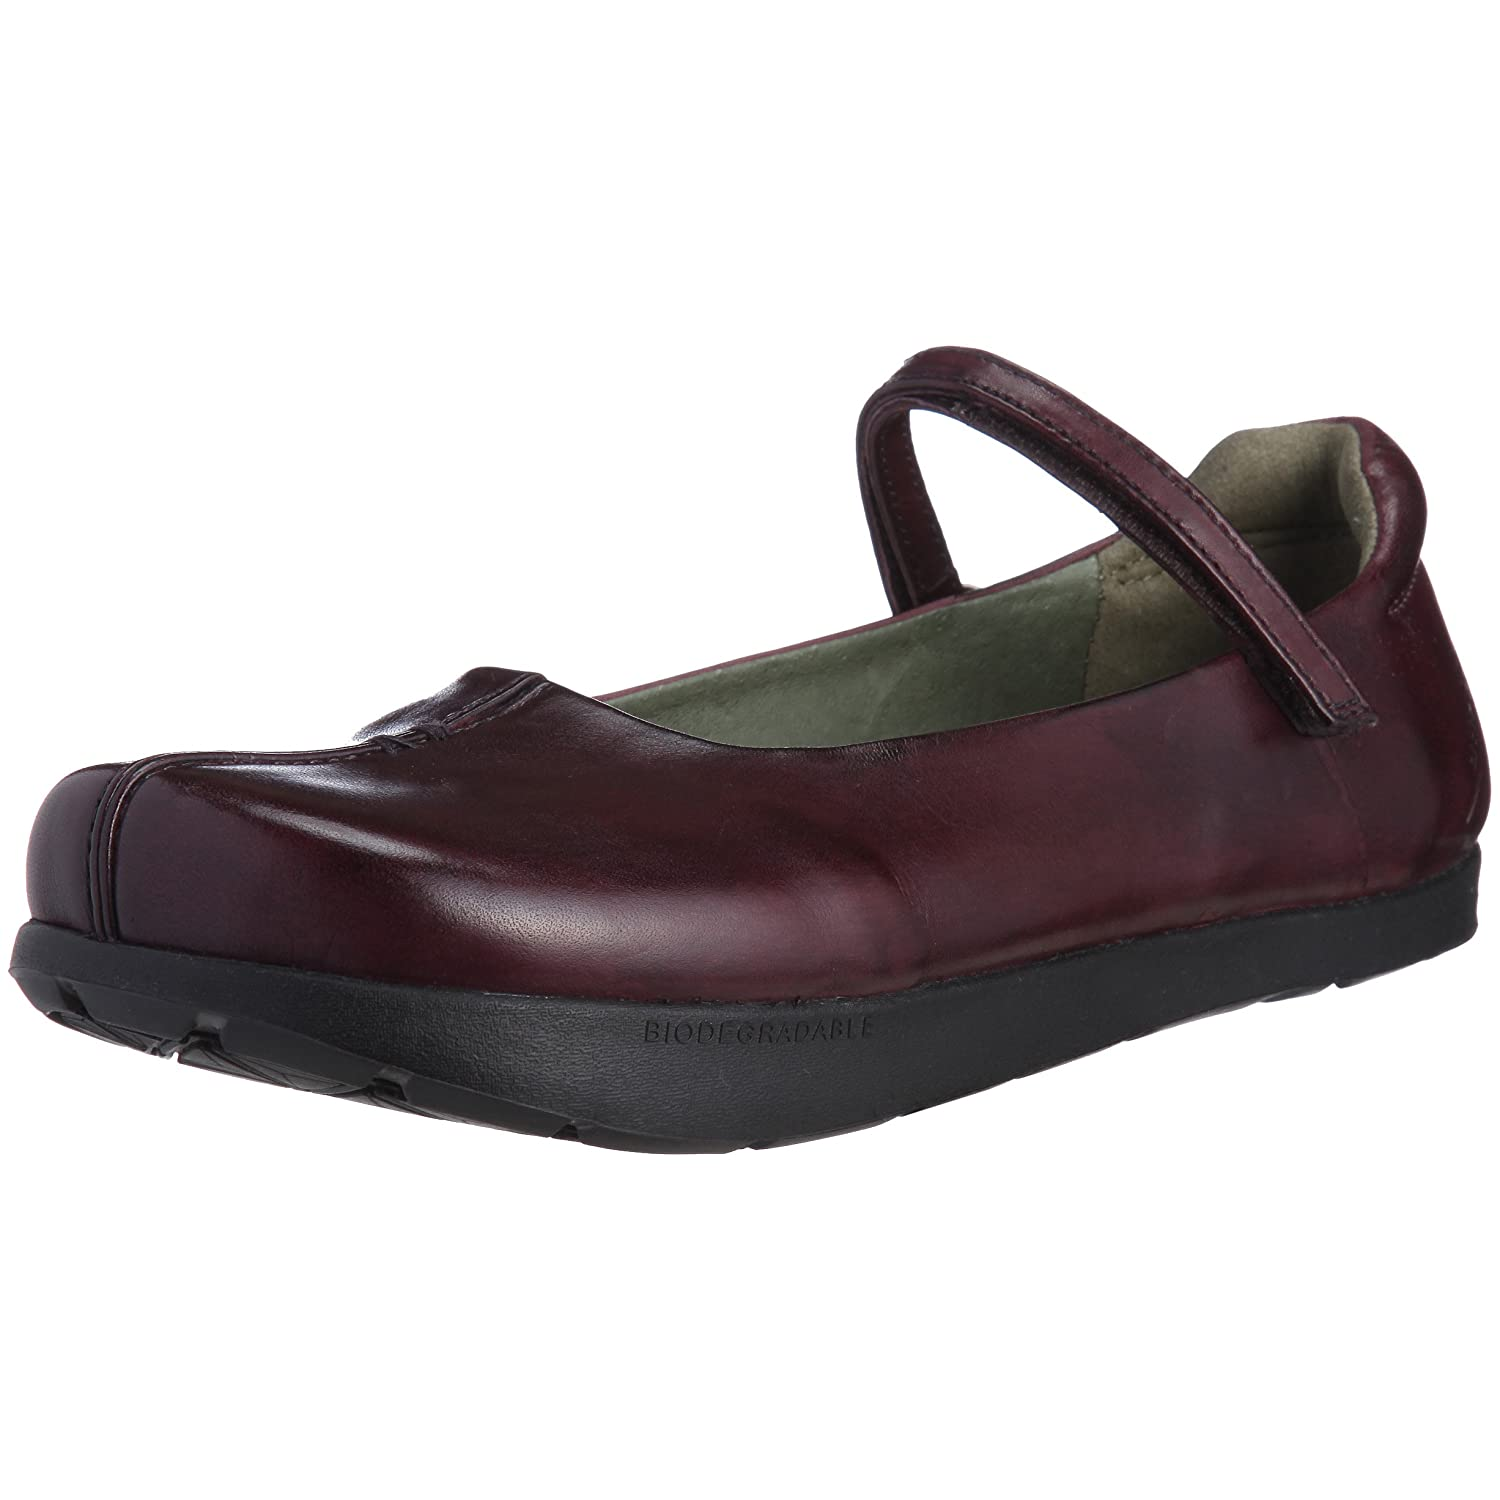 Kalso Earth 100349WLEA Womens Solar Single Strap Flat Shoe B002XQ1V4I 9 B(M) US|Plum